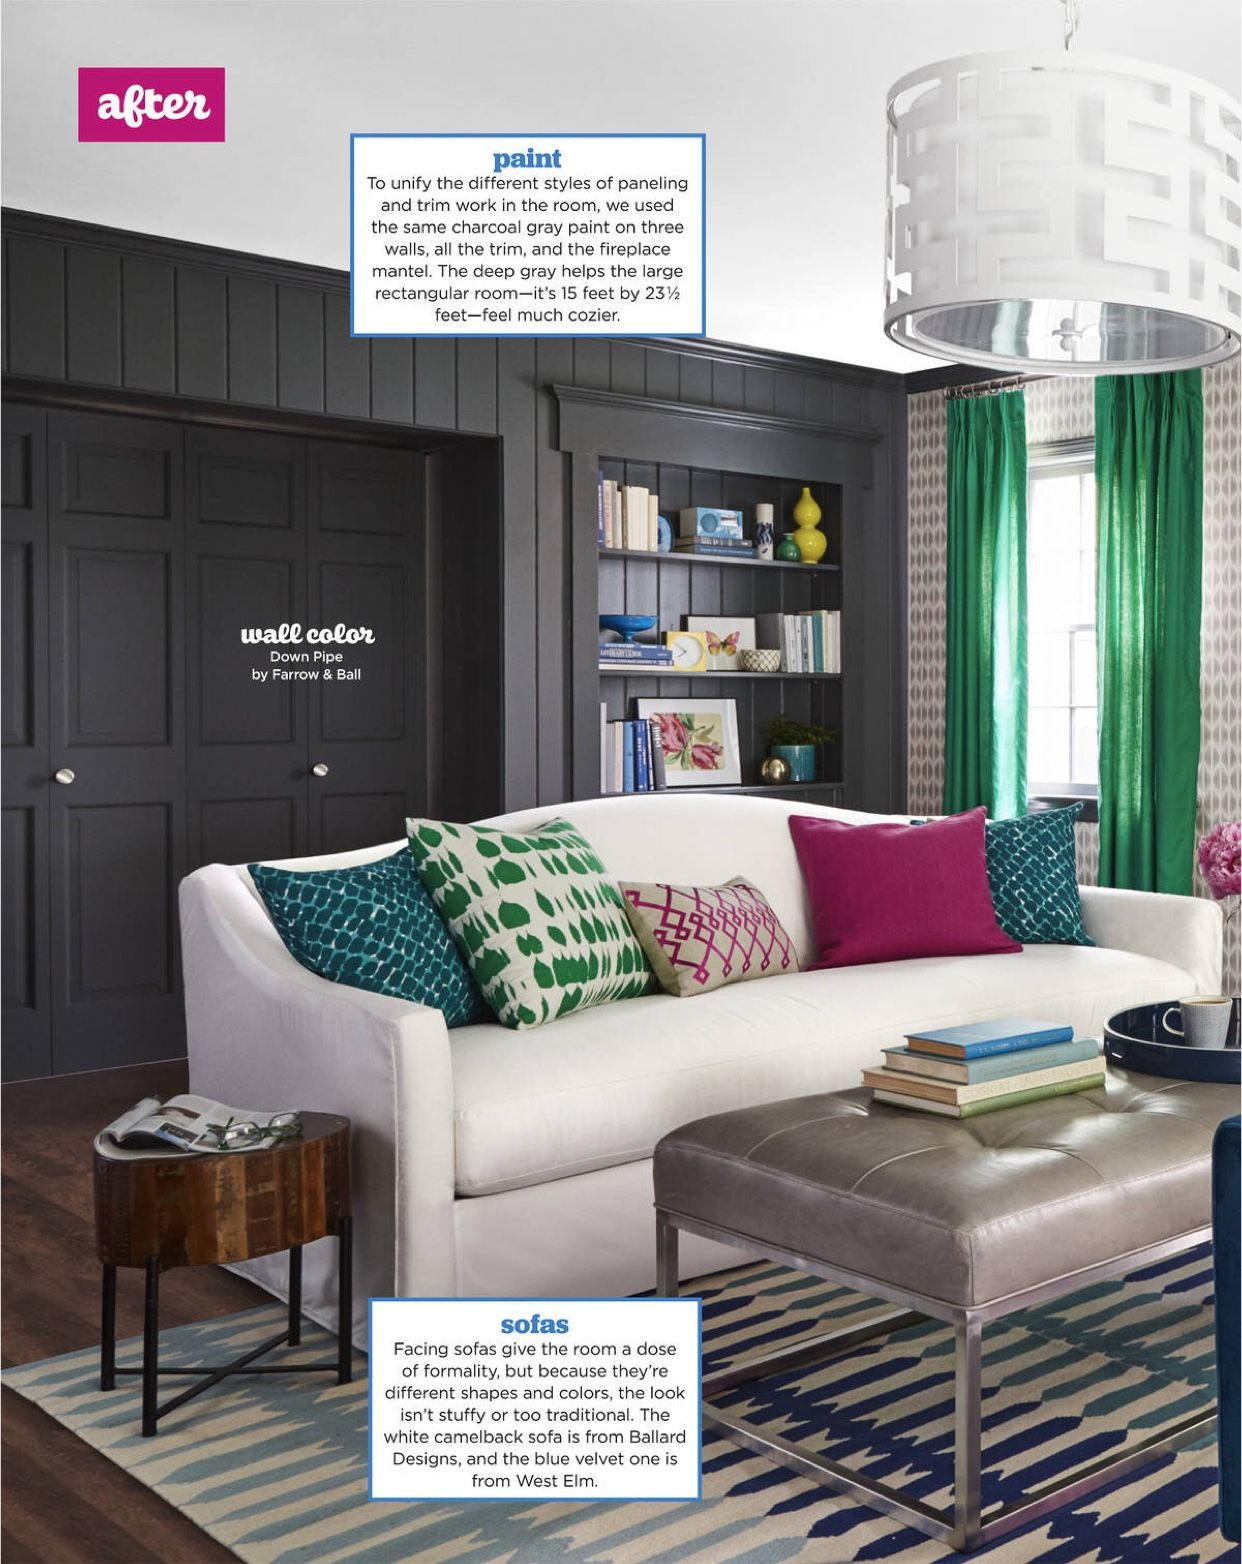 I saw this in the October 2016 issue of HGTV Magazine.   http://bit.ly/1mzvglC